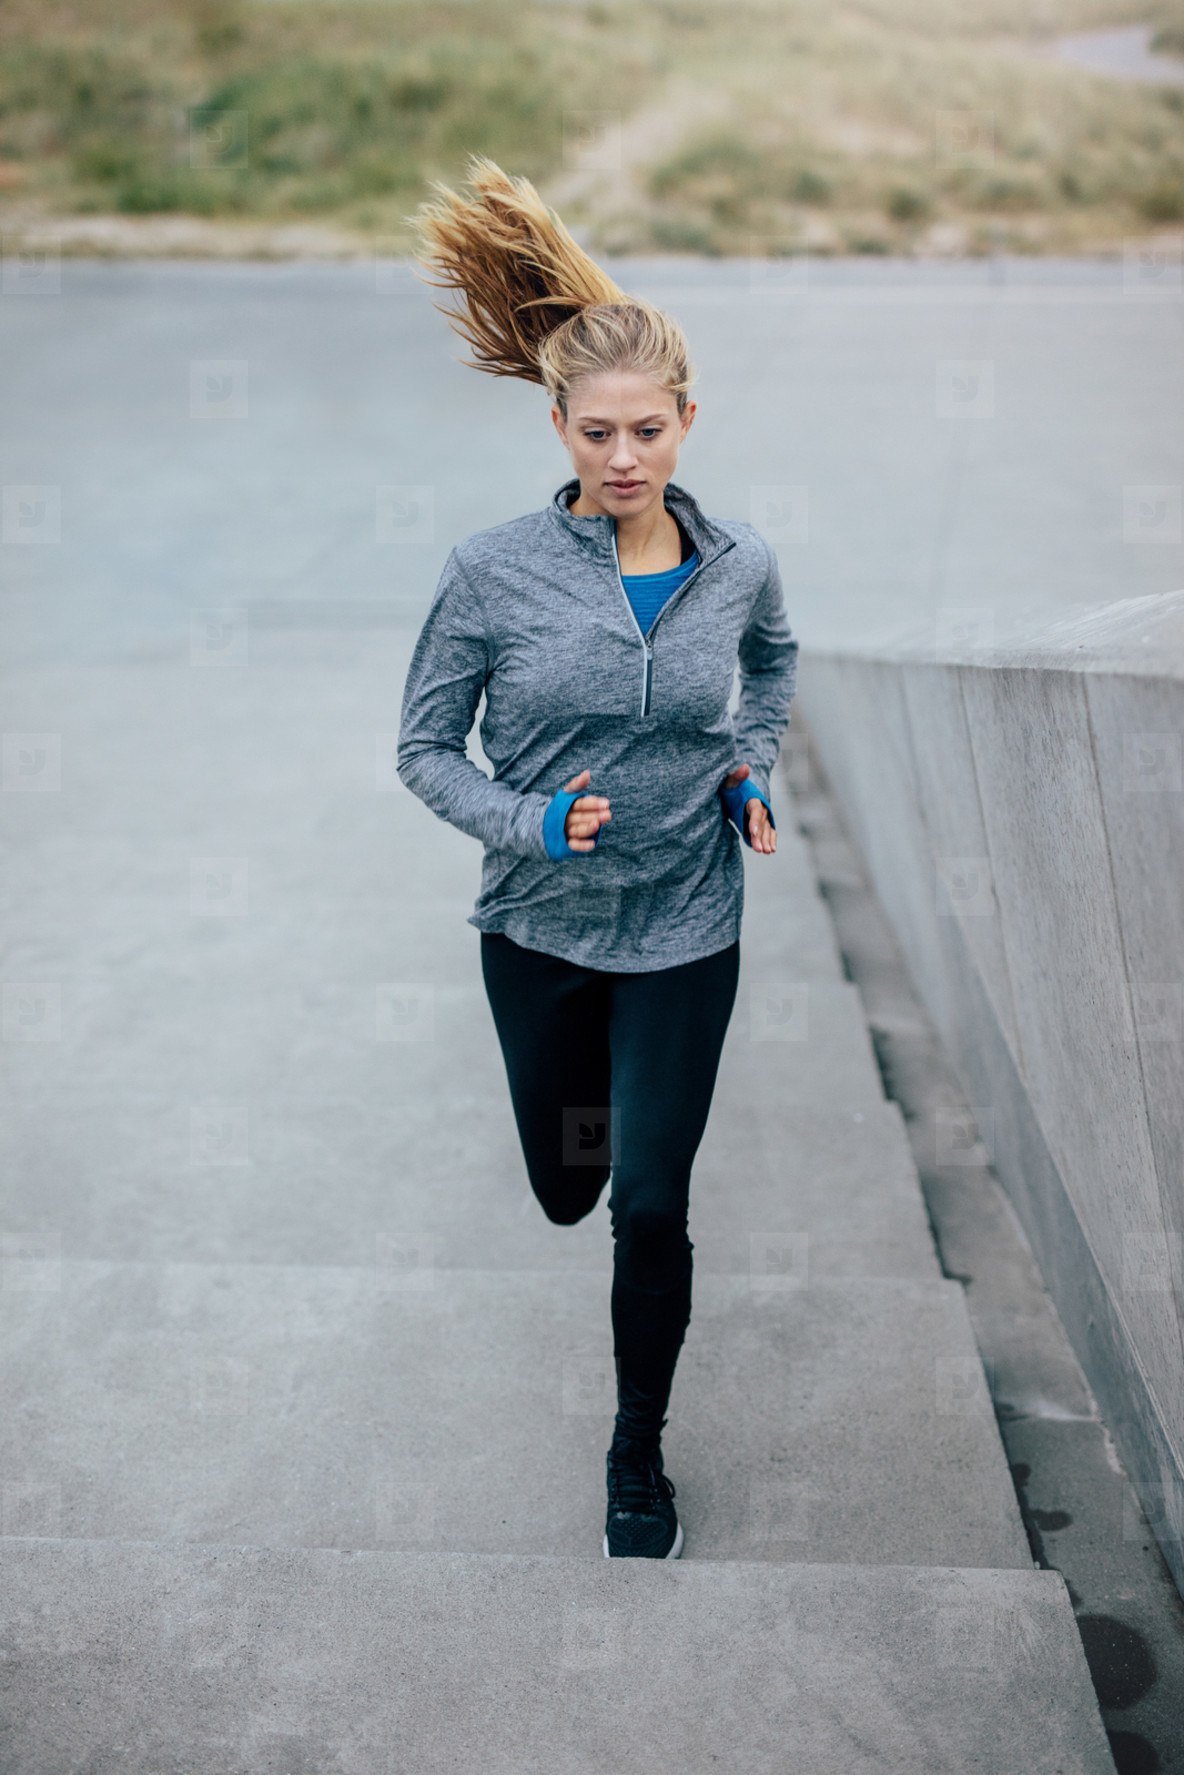 Fitness woman doing running exercise on stair